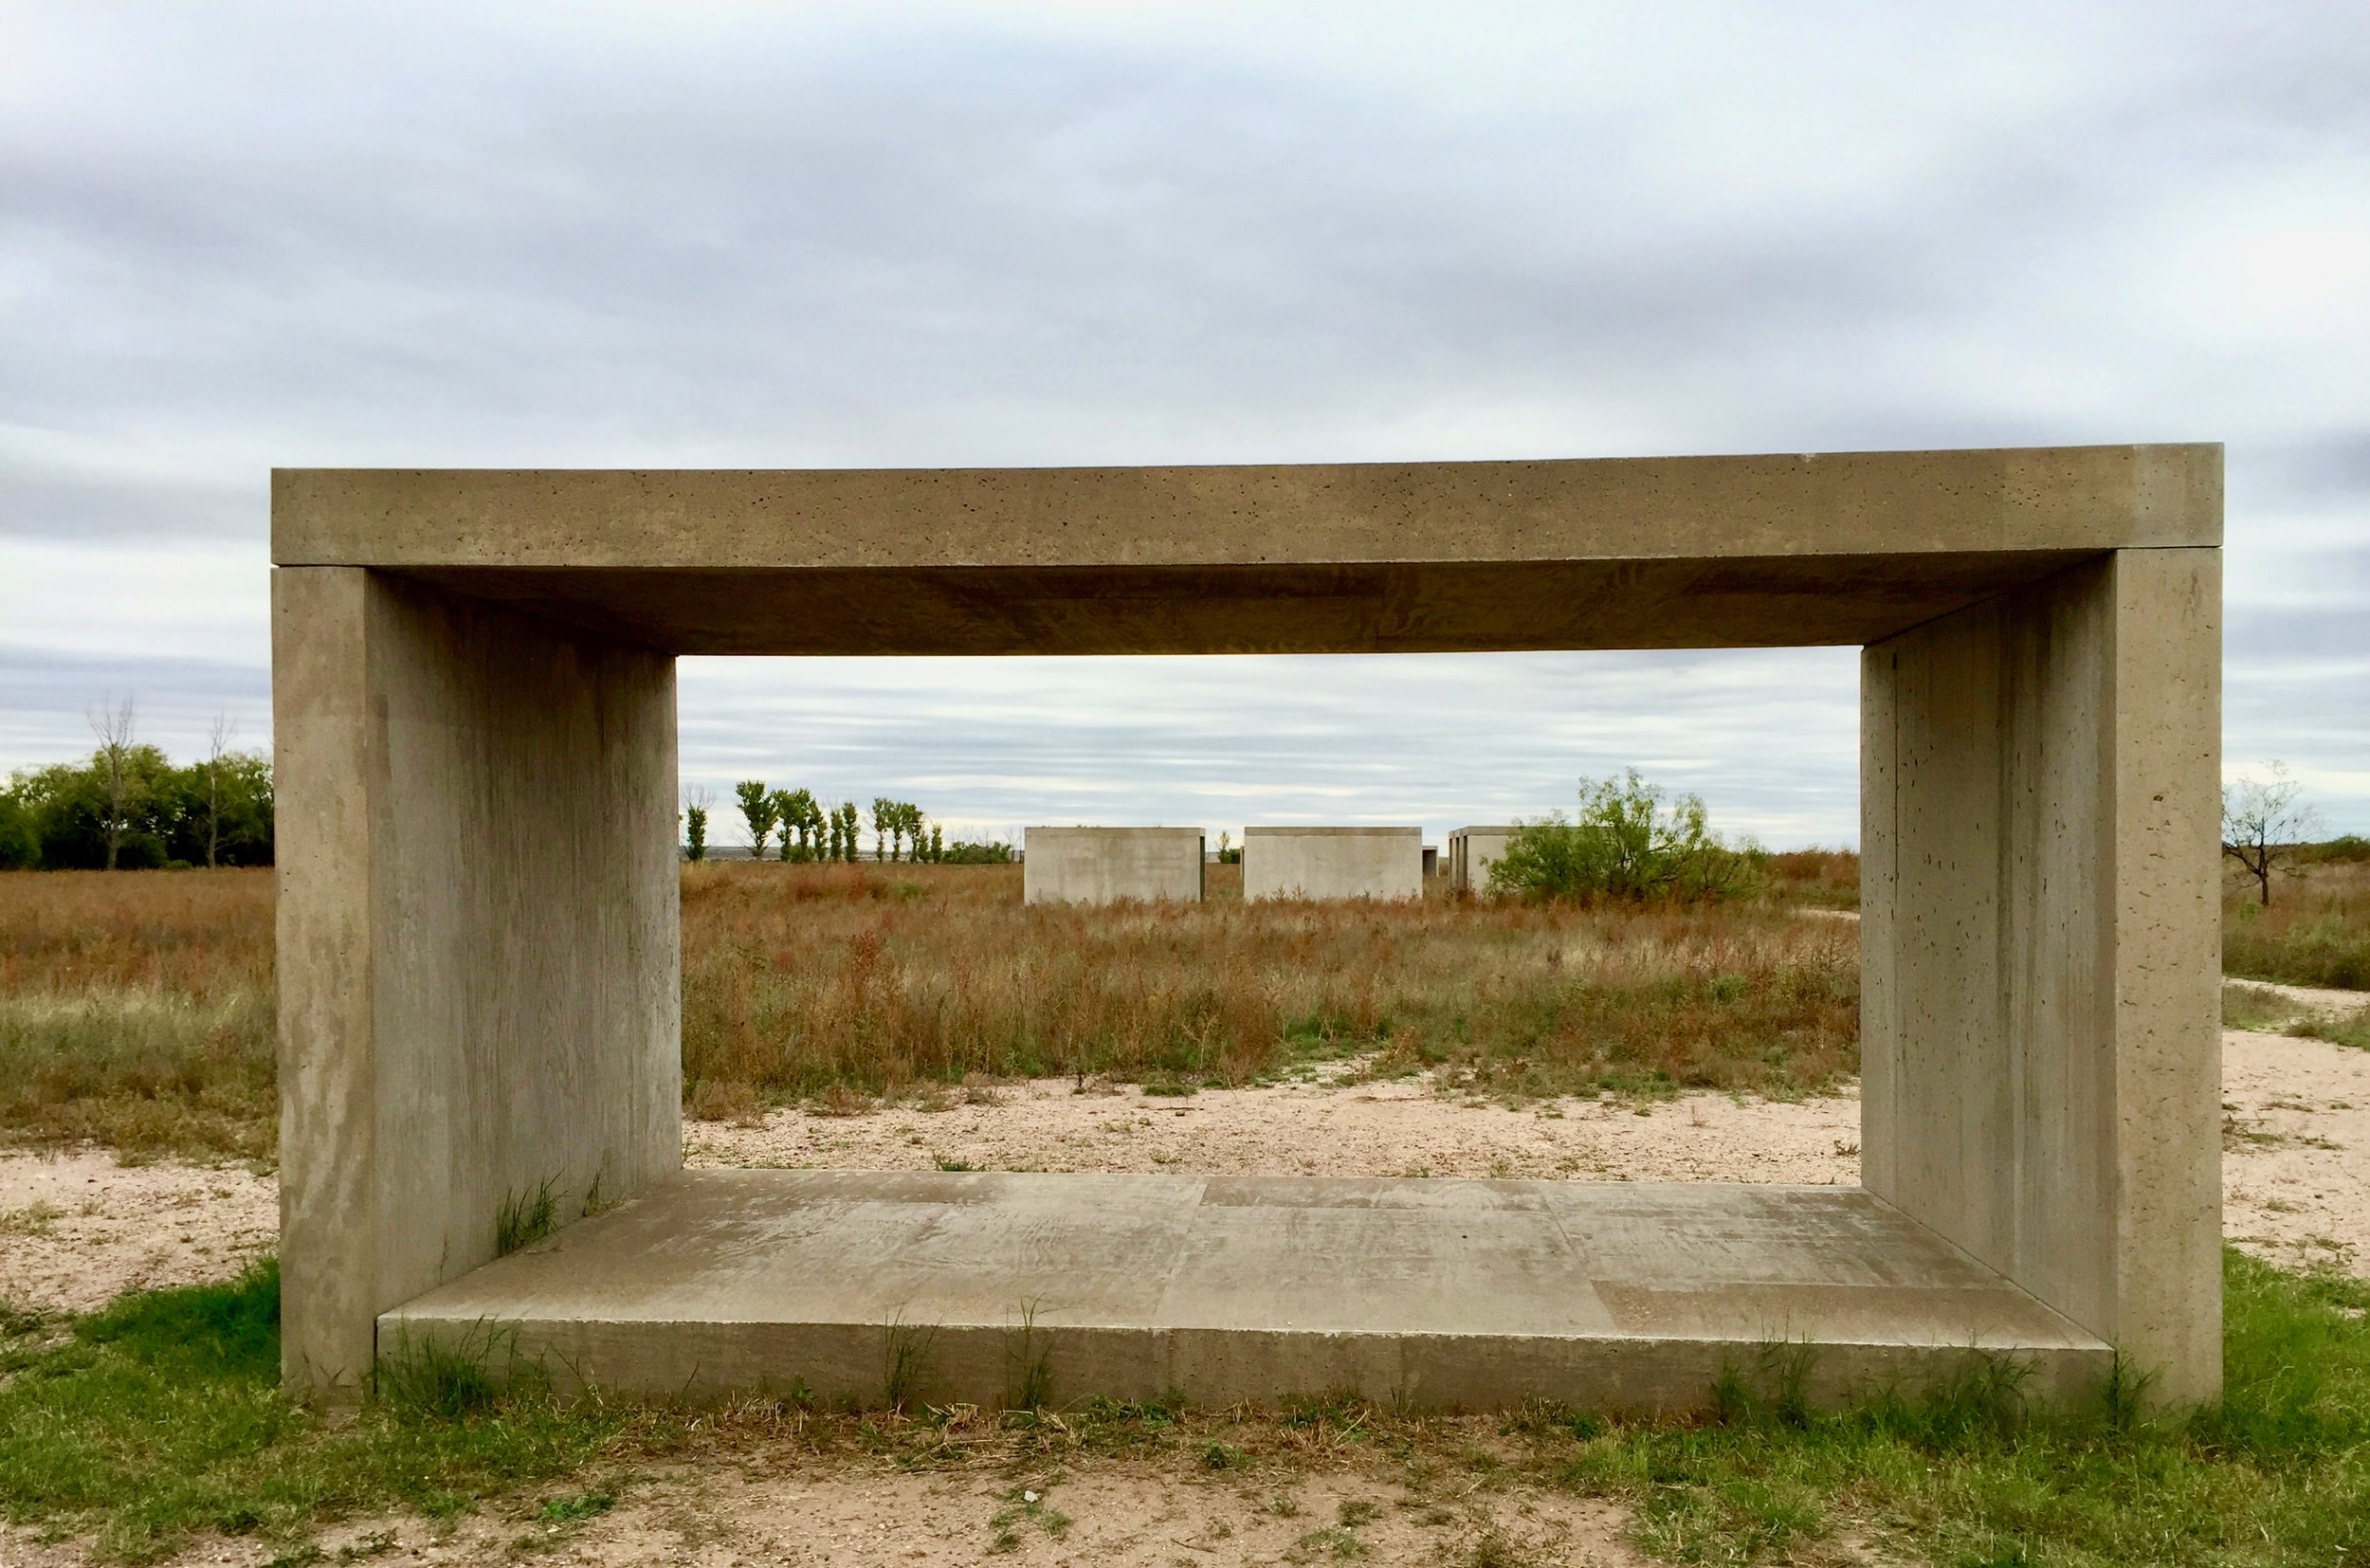 15 untitled works in concrete, 1980-1984, Donald Judd